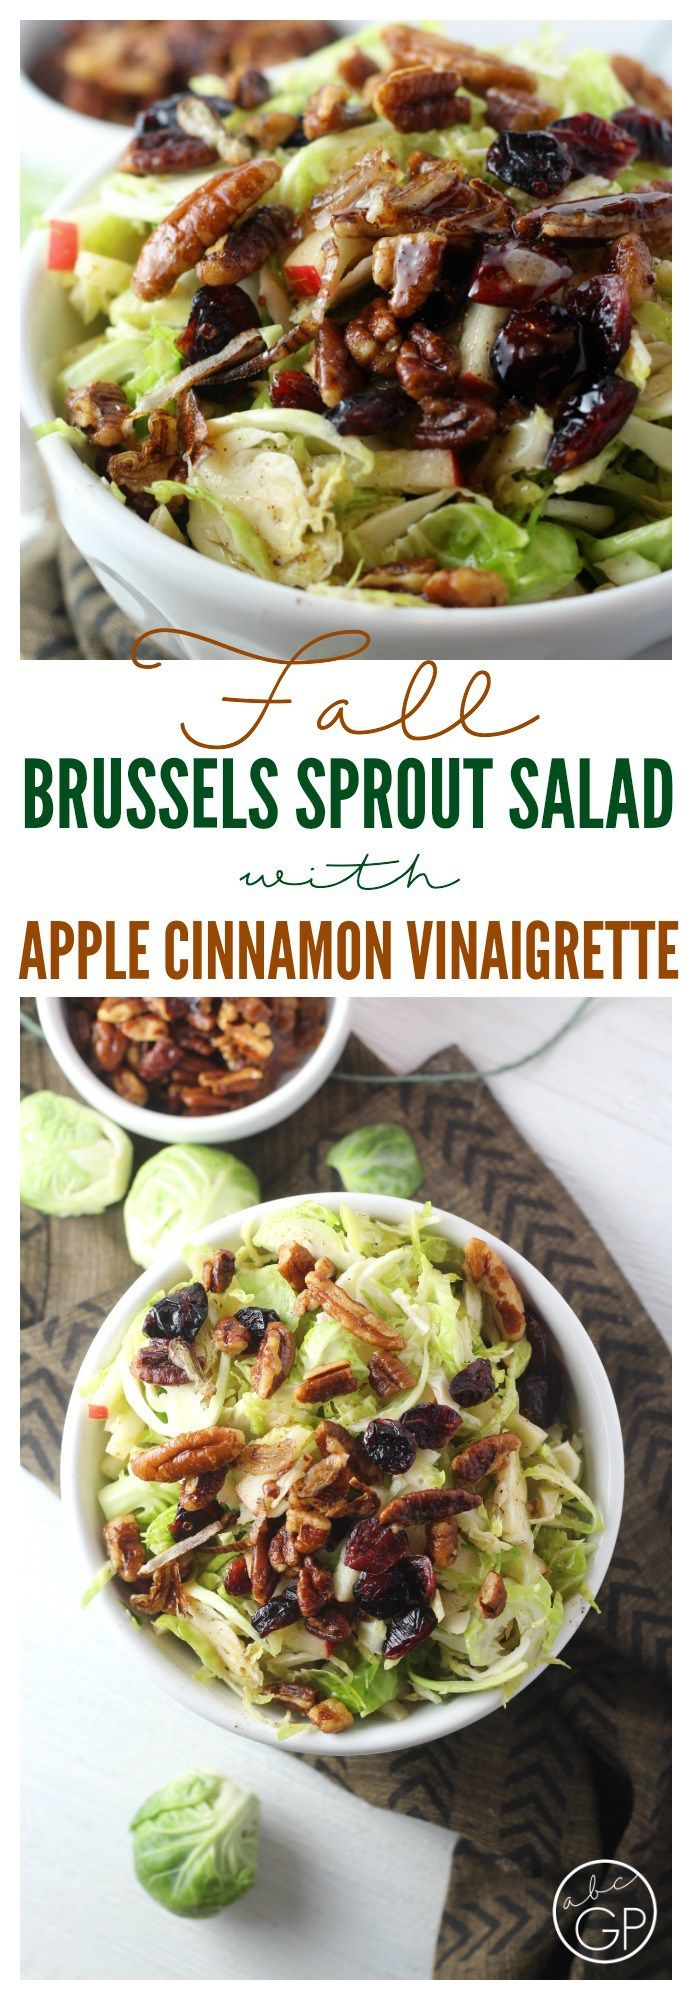 Shredded Brussels sprout salad with apple slices and maple pecans topped with a dreamy Apple Cinnamon Vinaigrette. #ad #StoredBrilliantly